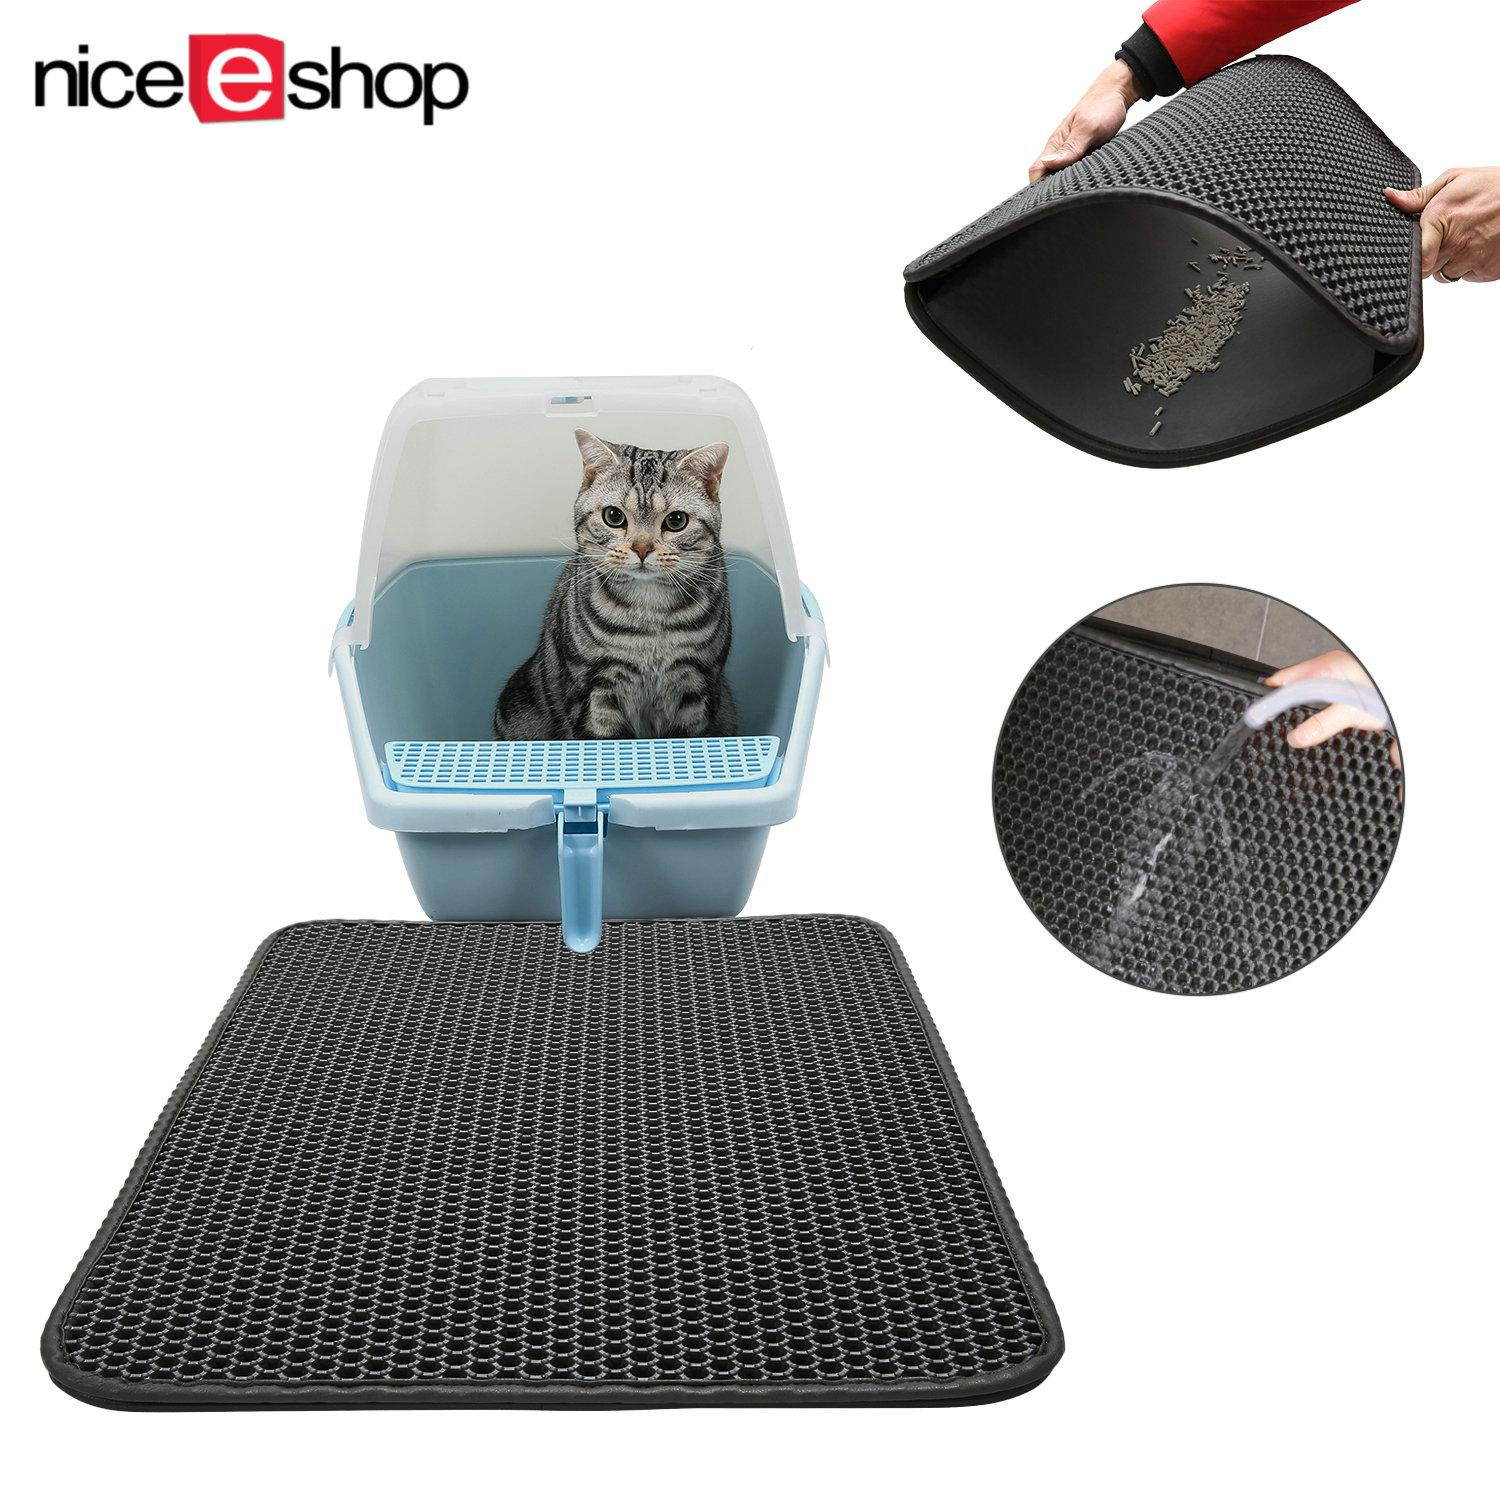 Niceeshop Water Proof Cat Litter Mat Double Layer Honeycomb Cat Feeding Mat Litter Trapping Size 40X50Cm Intl For Sale